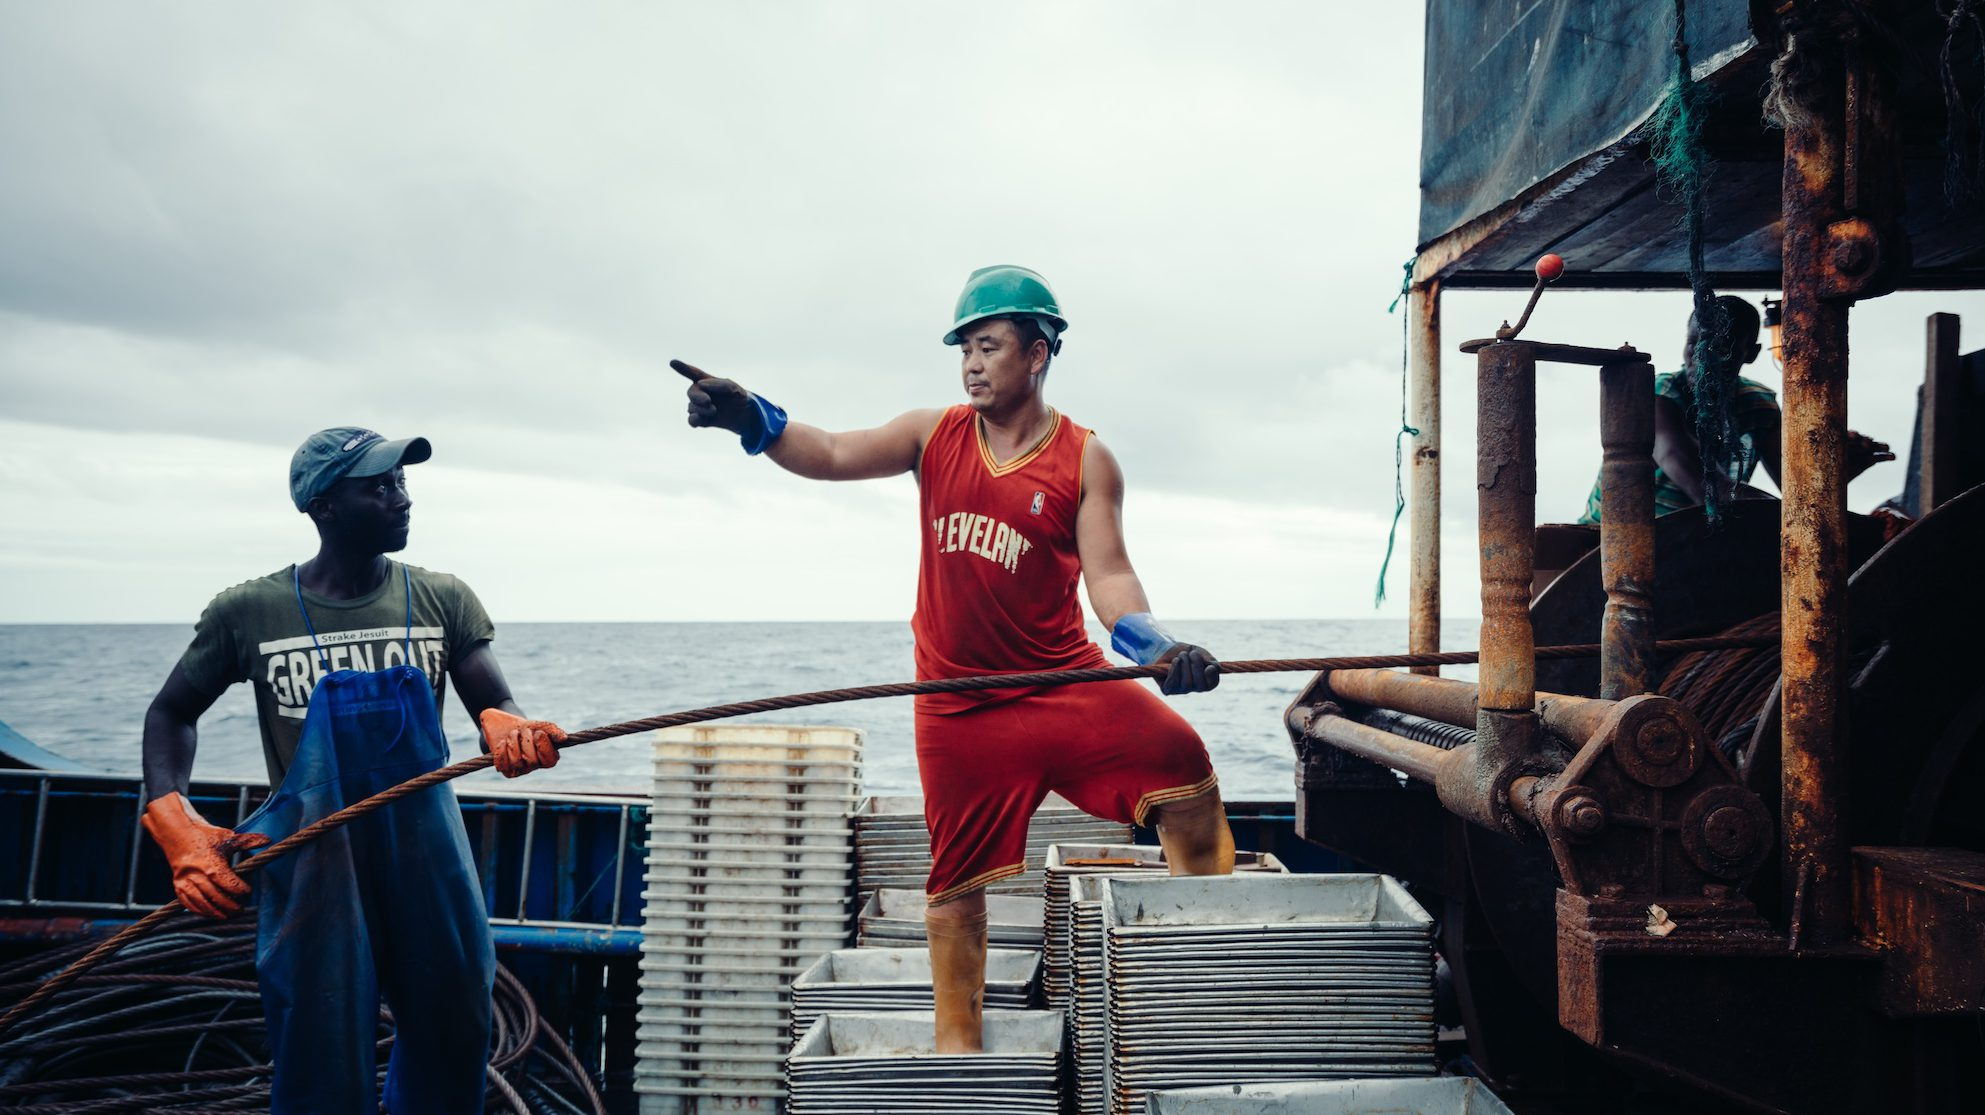 Yuyang Liu, 25, a self-taught Chinese photographer, documented the influx of Chinese fishing fleets for the nonprofit Greenpeace.